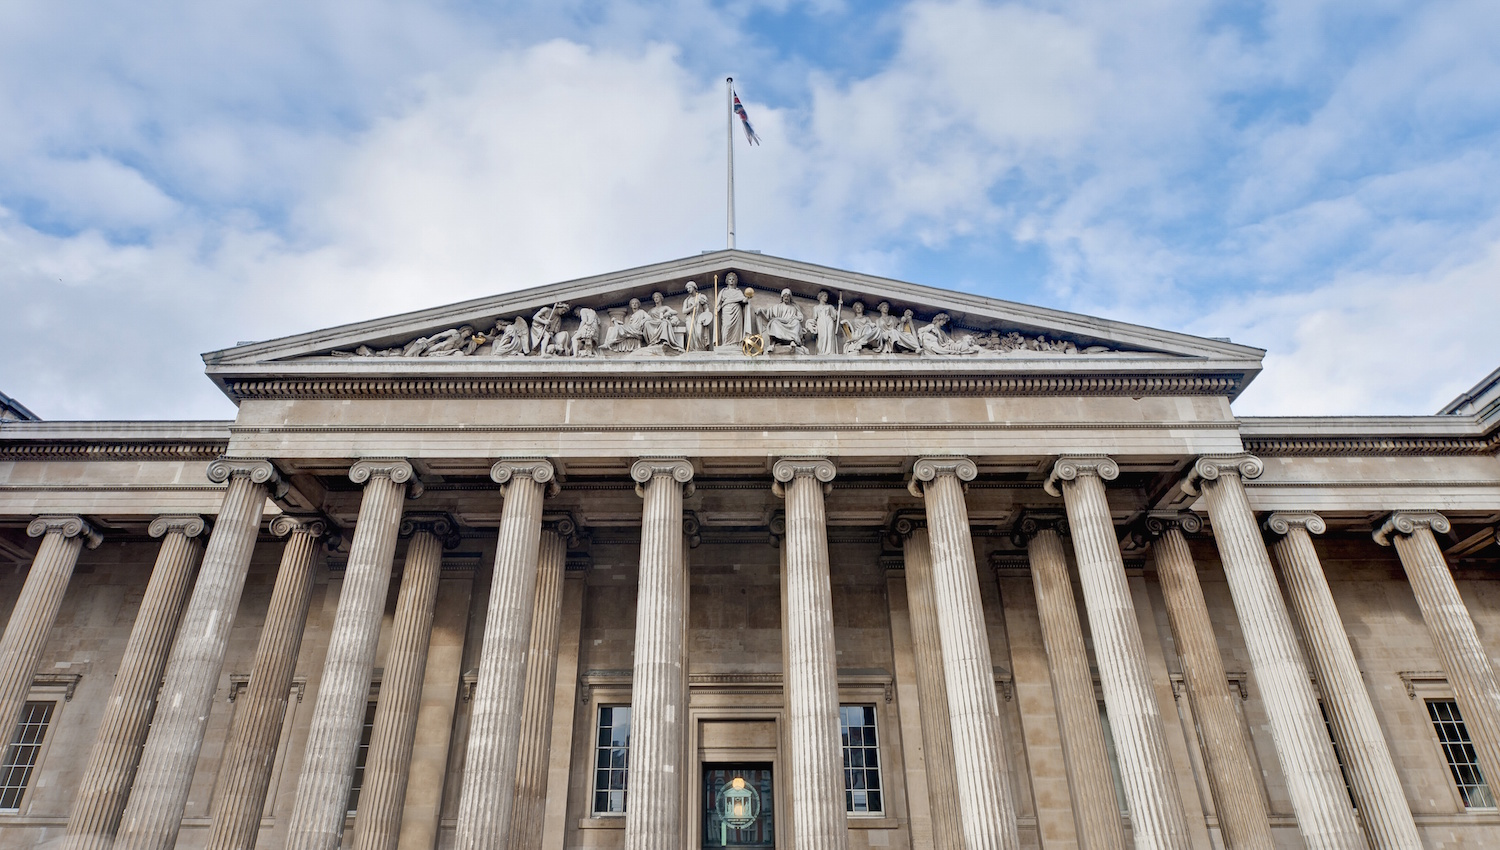 british museum london book tickets tours getyourguide com